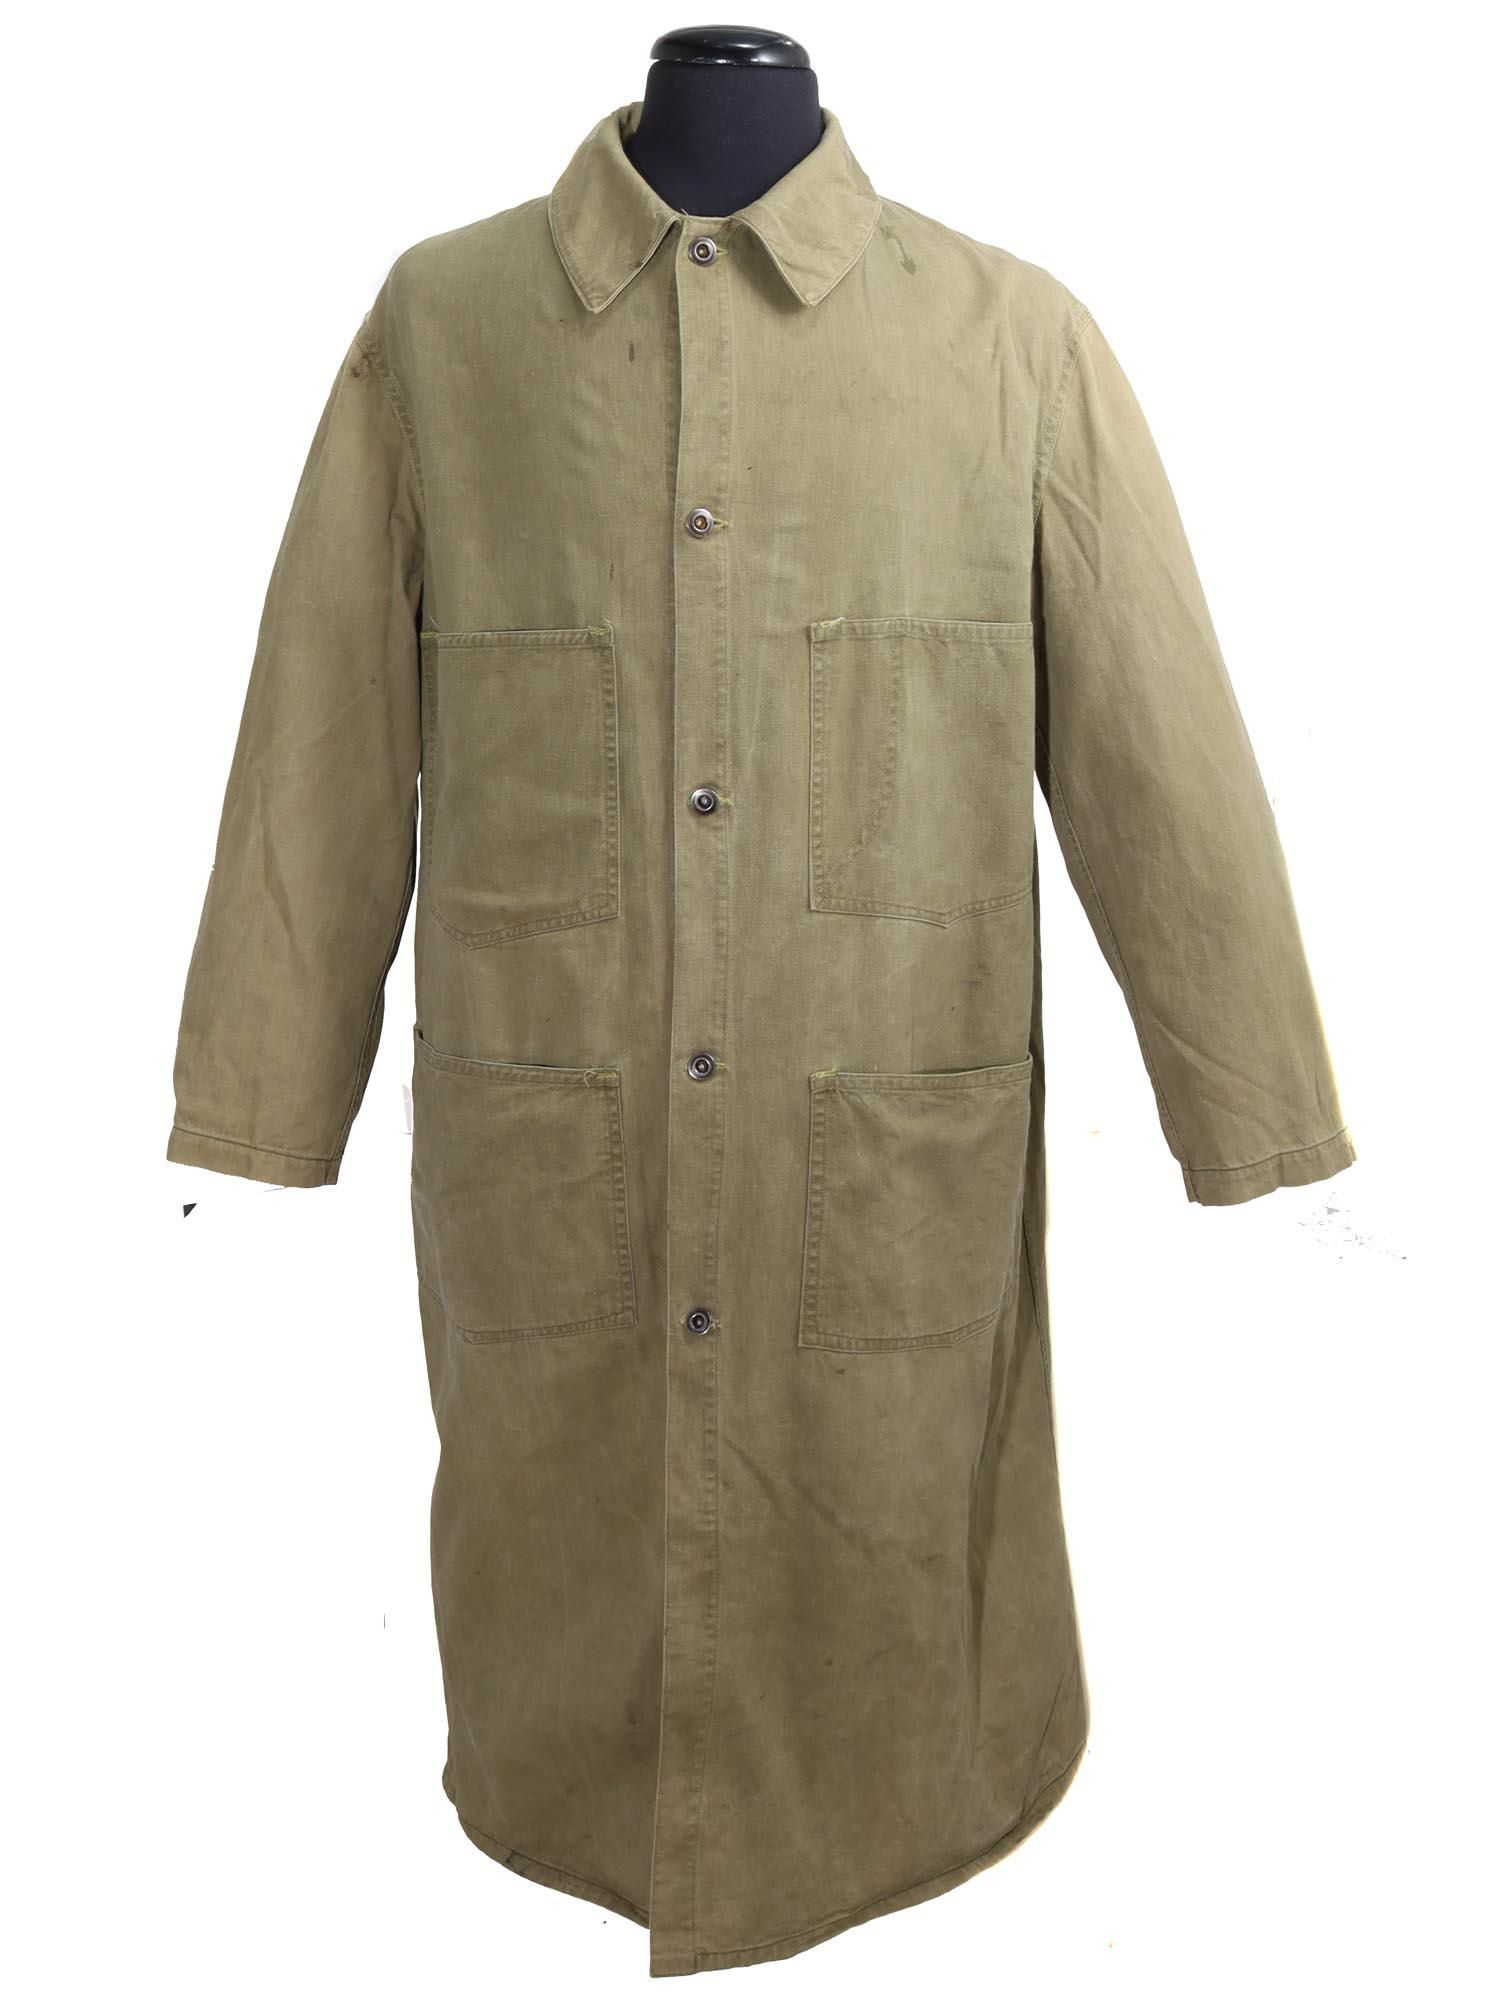 A WWII US MILITARY ARMY UNIFORMS SUEDE COAT